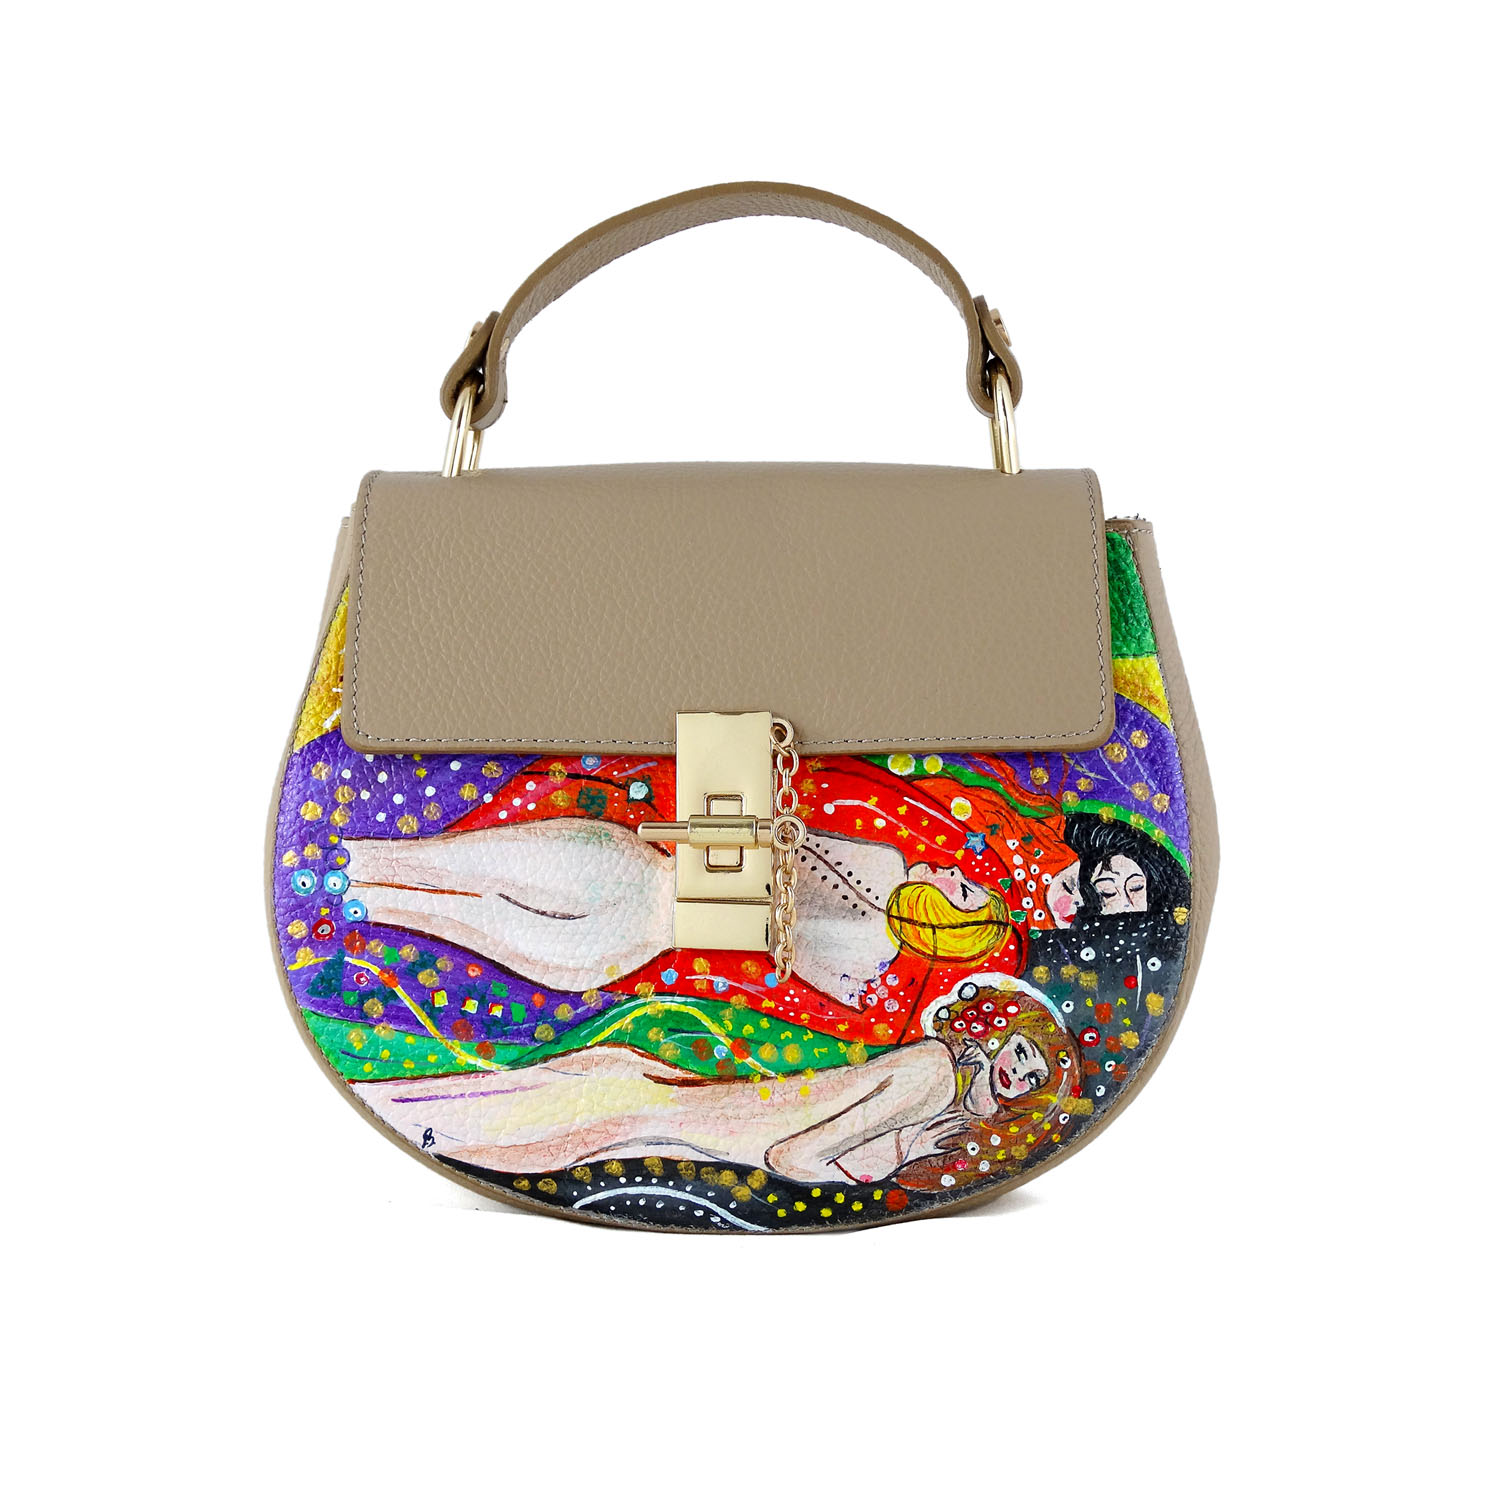 Hand-painted bag - Water snakes by Klimt